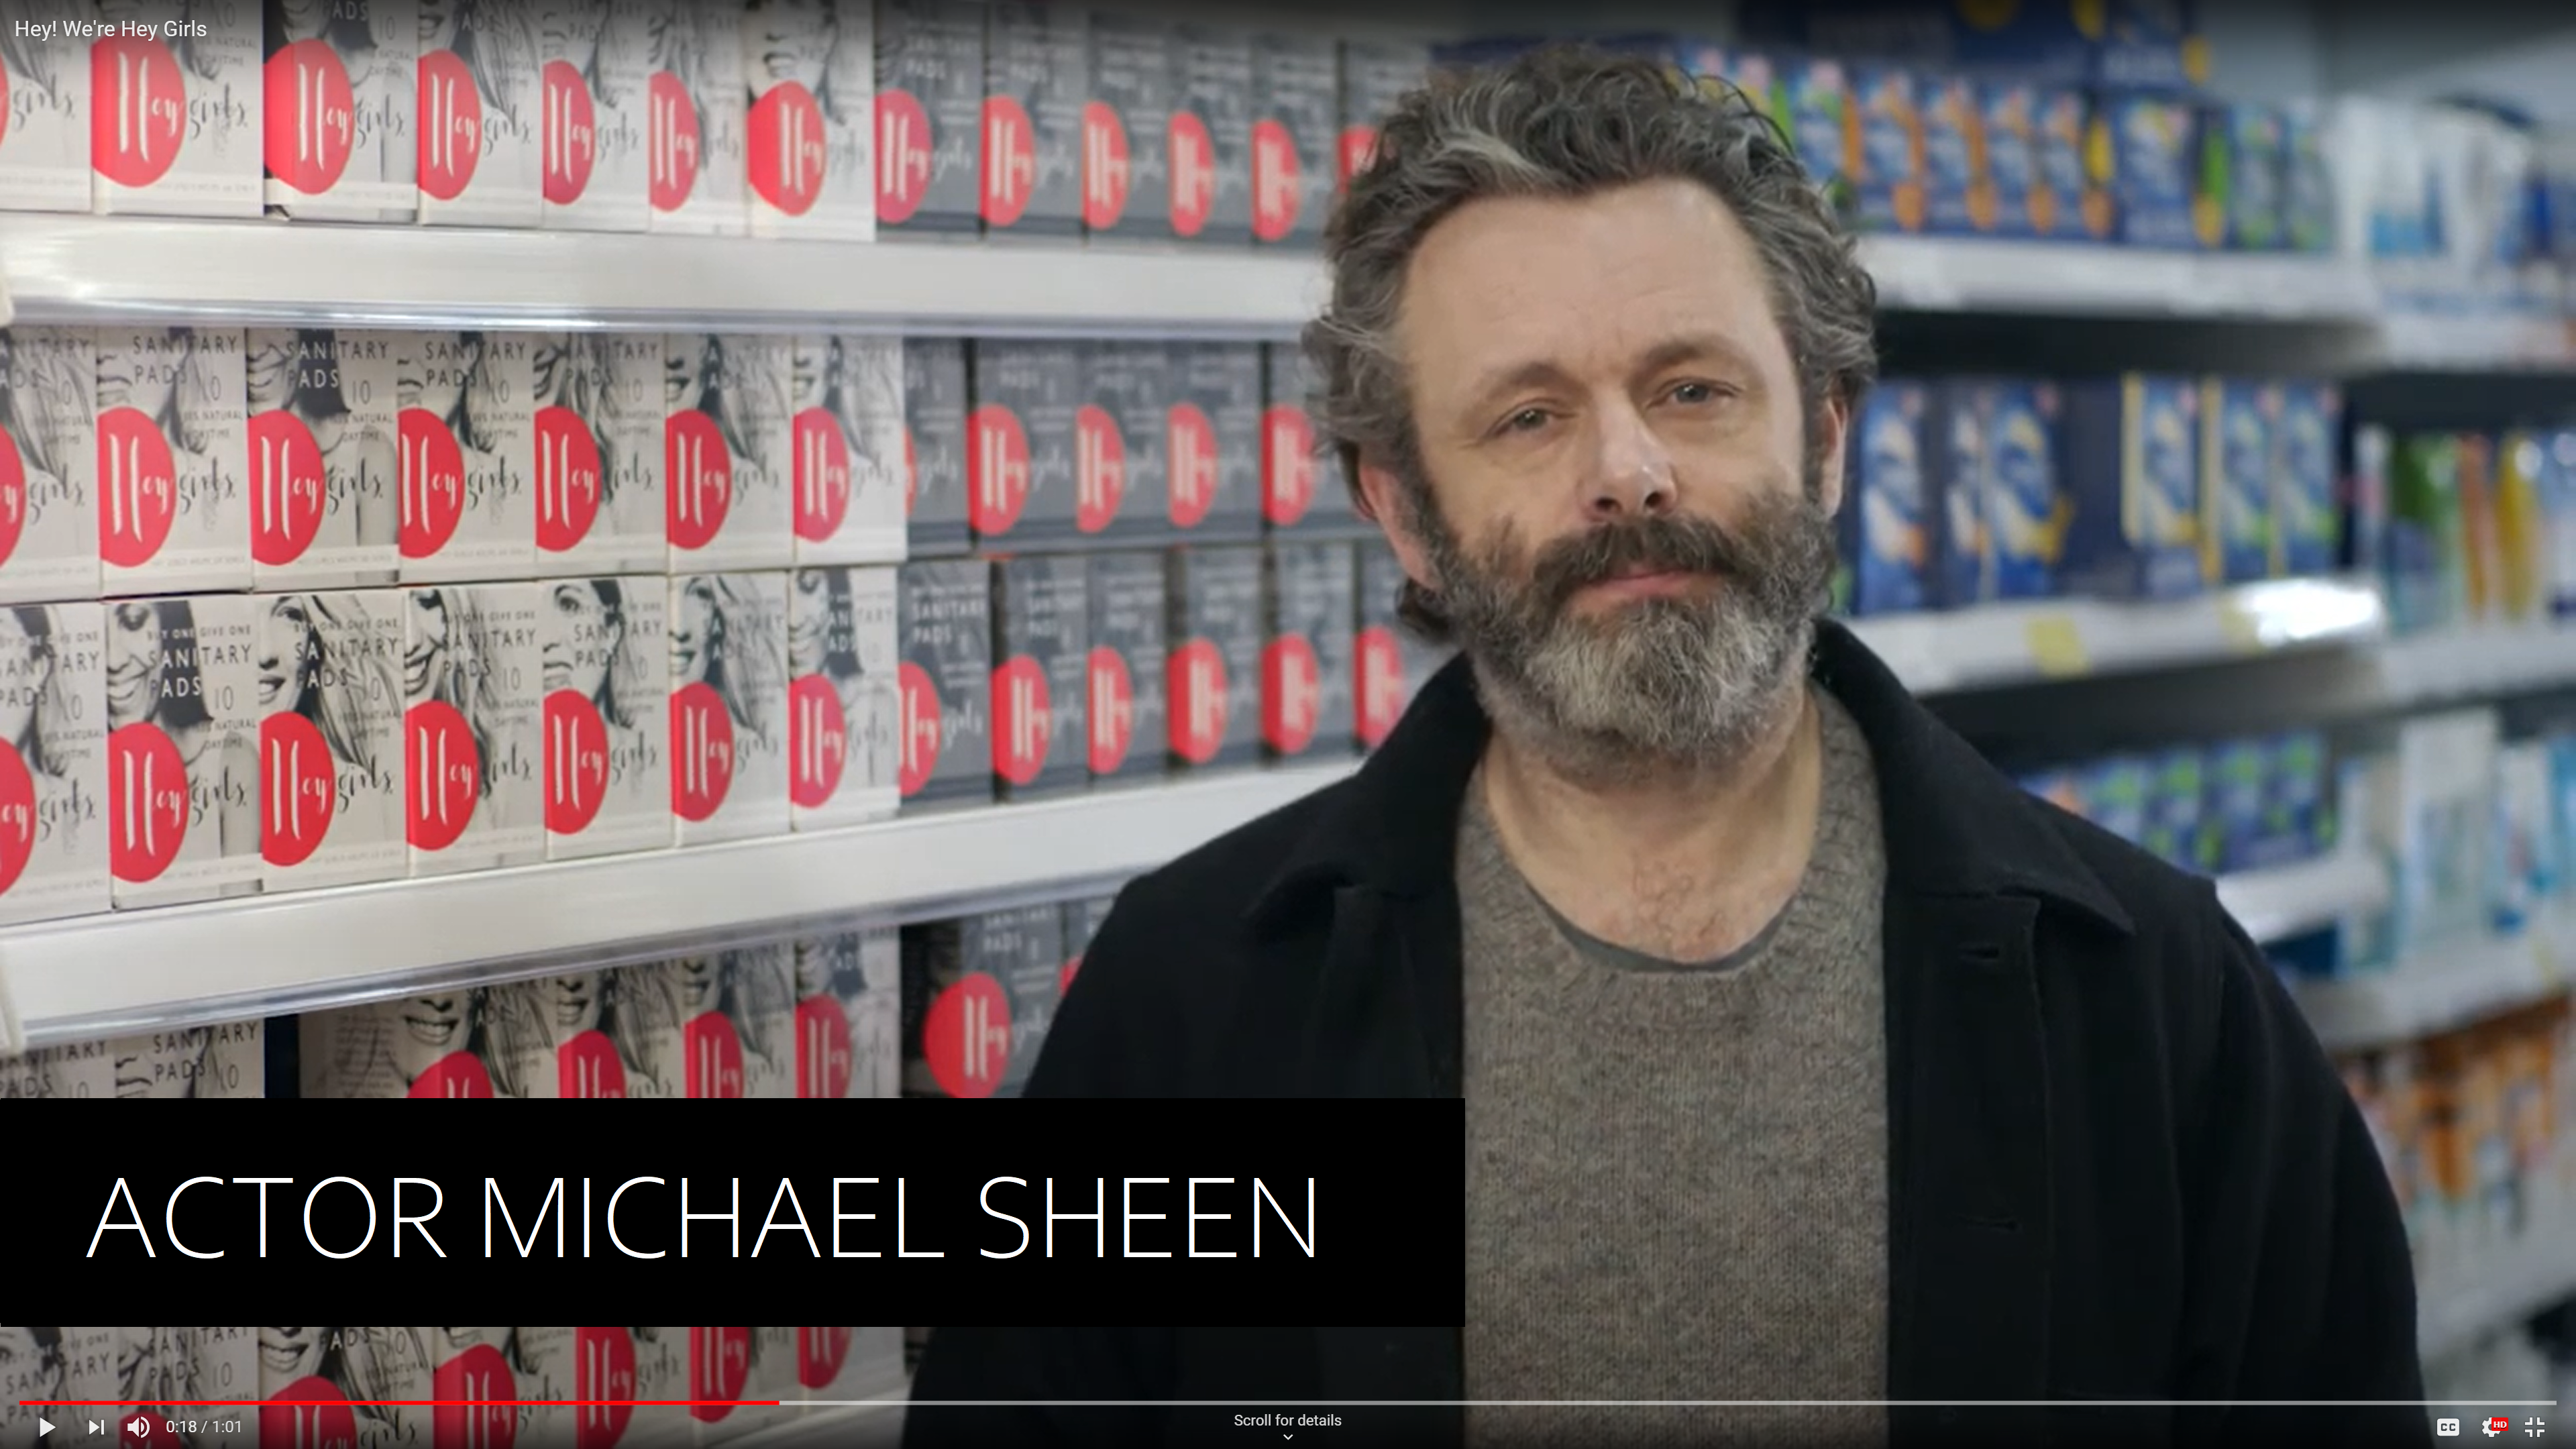 Michael Sheen commercial for Hey Girls period products